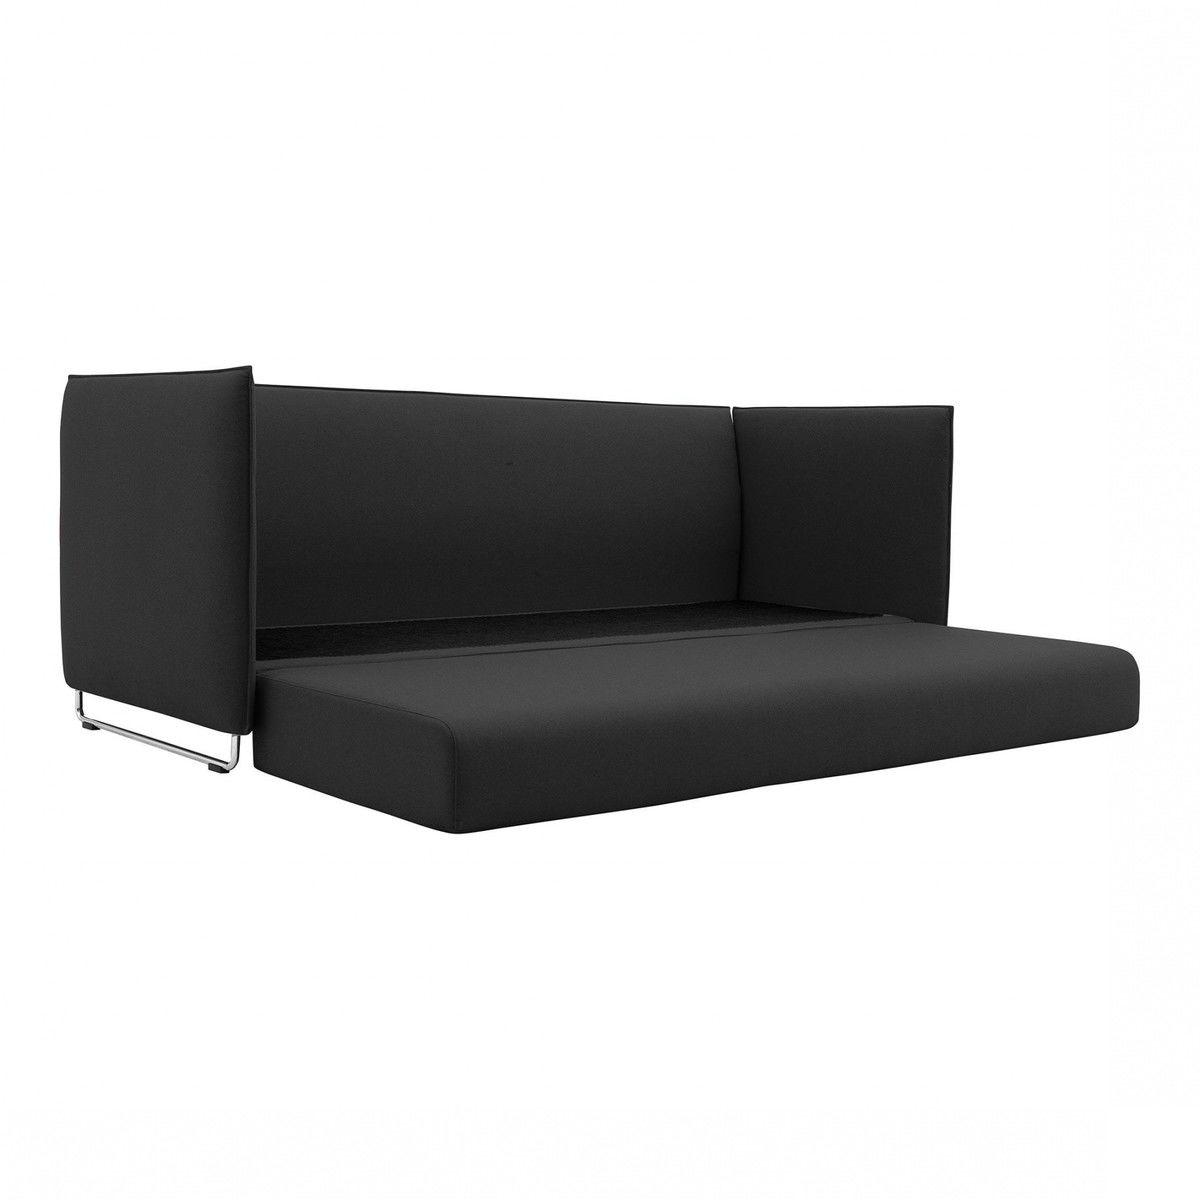 metro schlafsofa softline. Black Bedroom Furniture Sets. Home Design Ideas